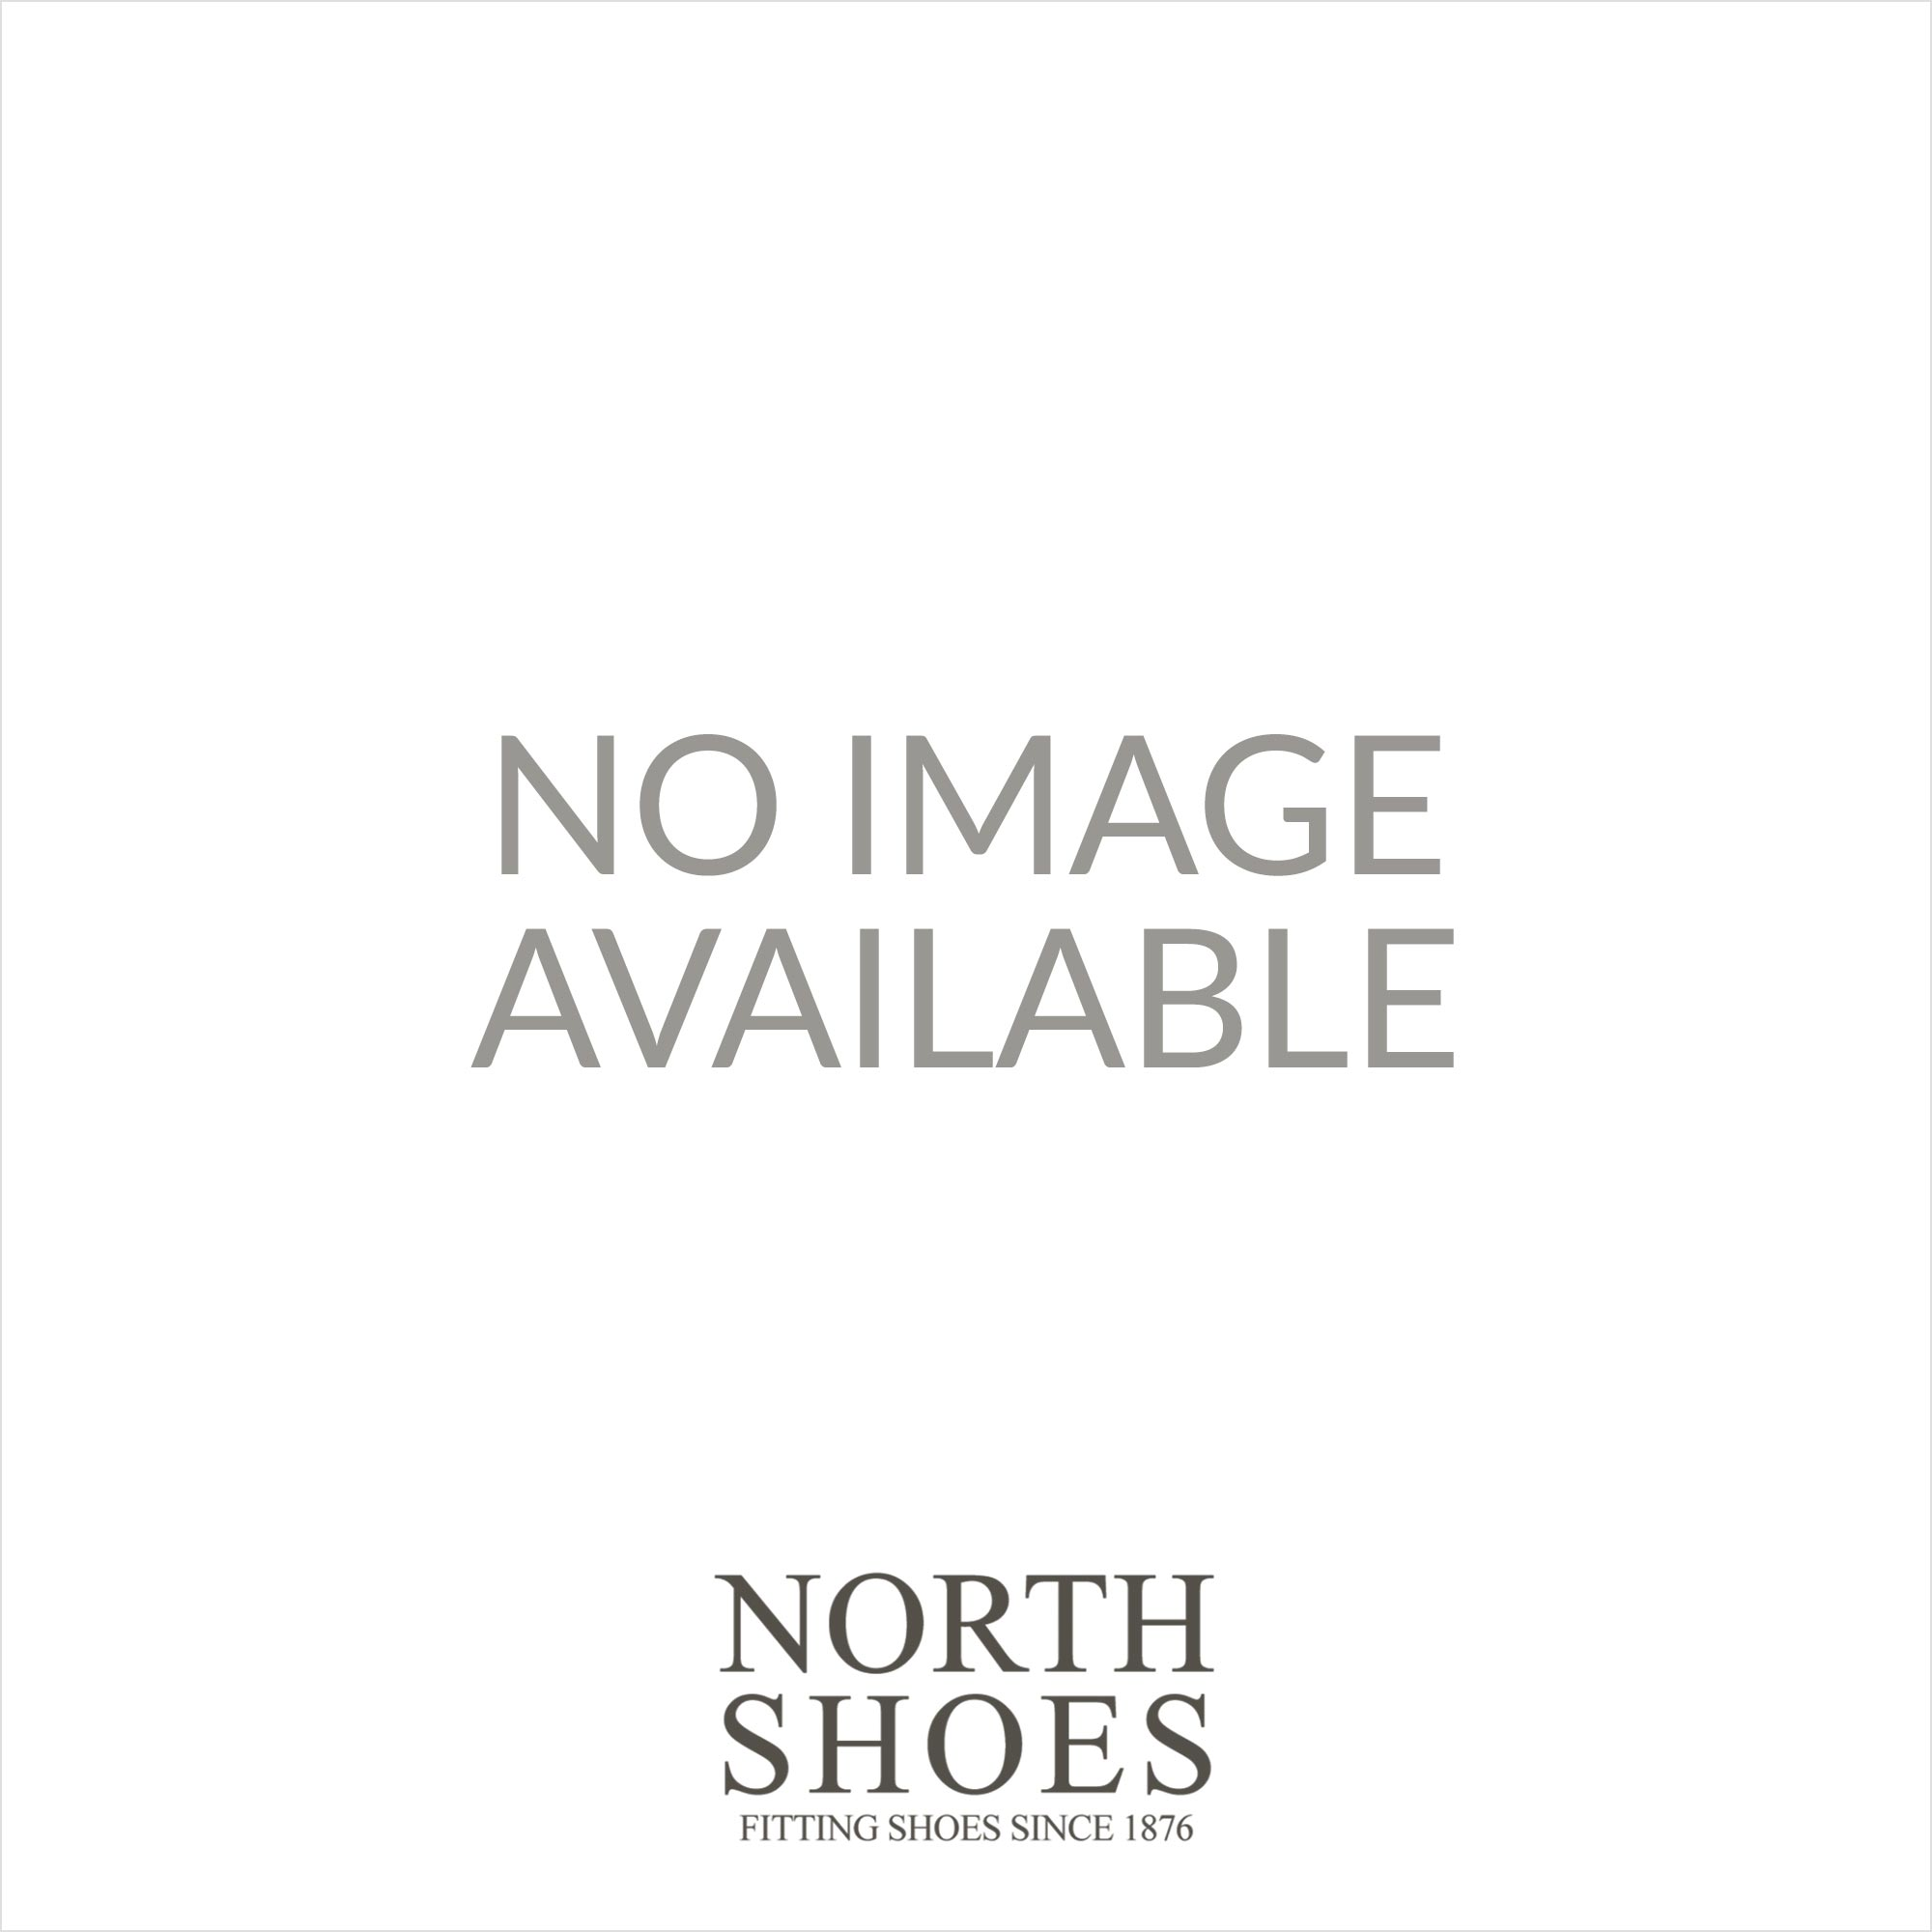 037b6377a98 Clarks Preppy Edge Black Leather Girls Slip On Loafer School Shoes - Clarks  from North Shoes UK